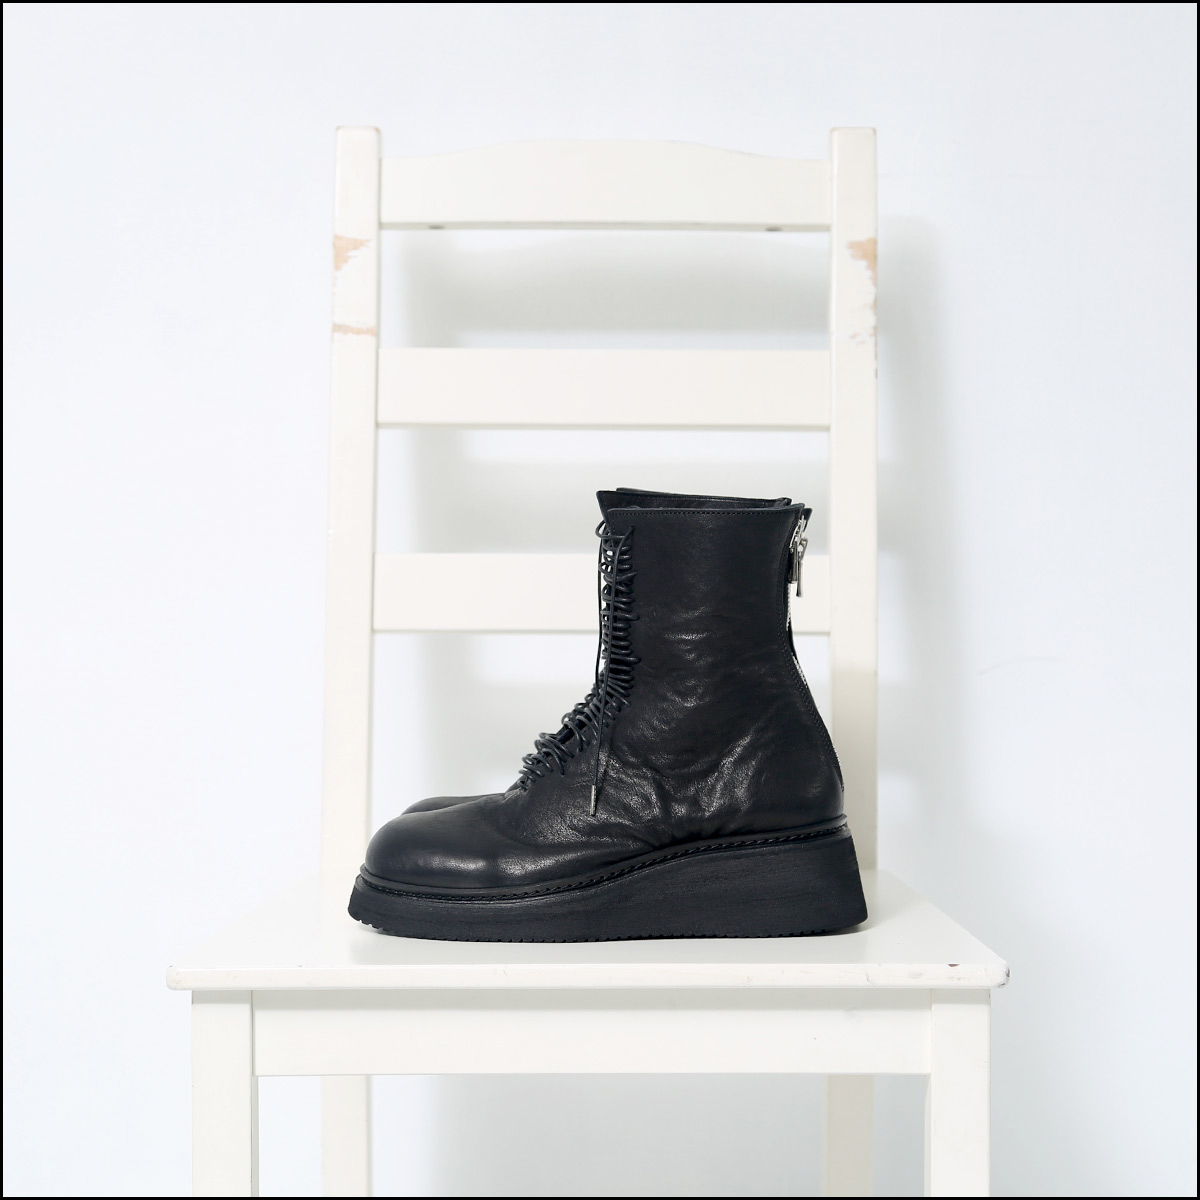 Portaille_LACE UP LEATHER BOOTS PQ03F_BLACK